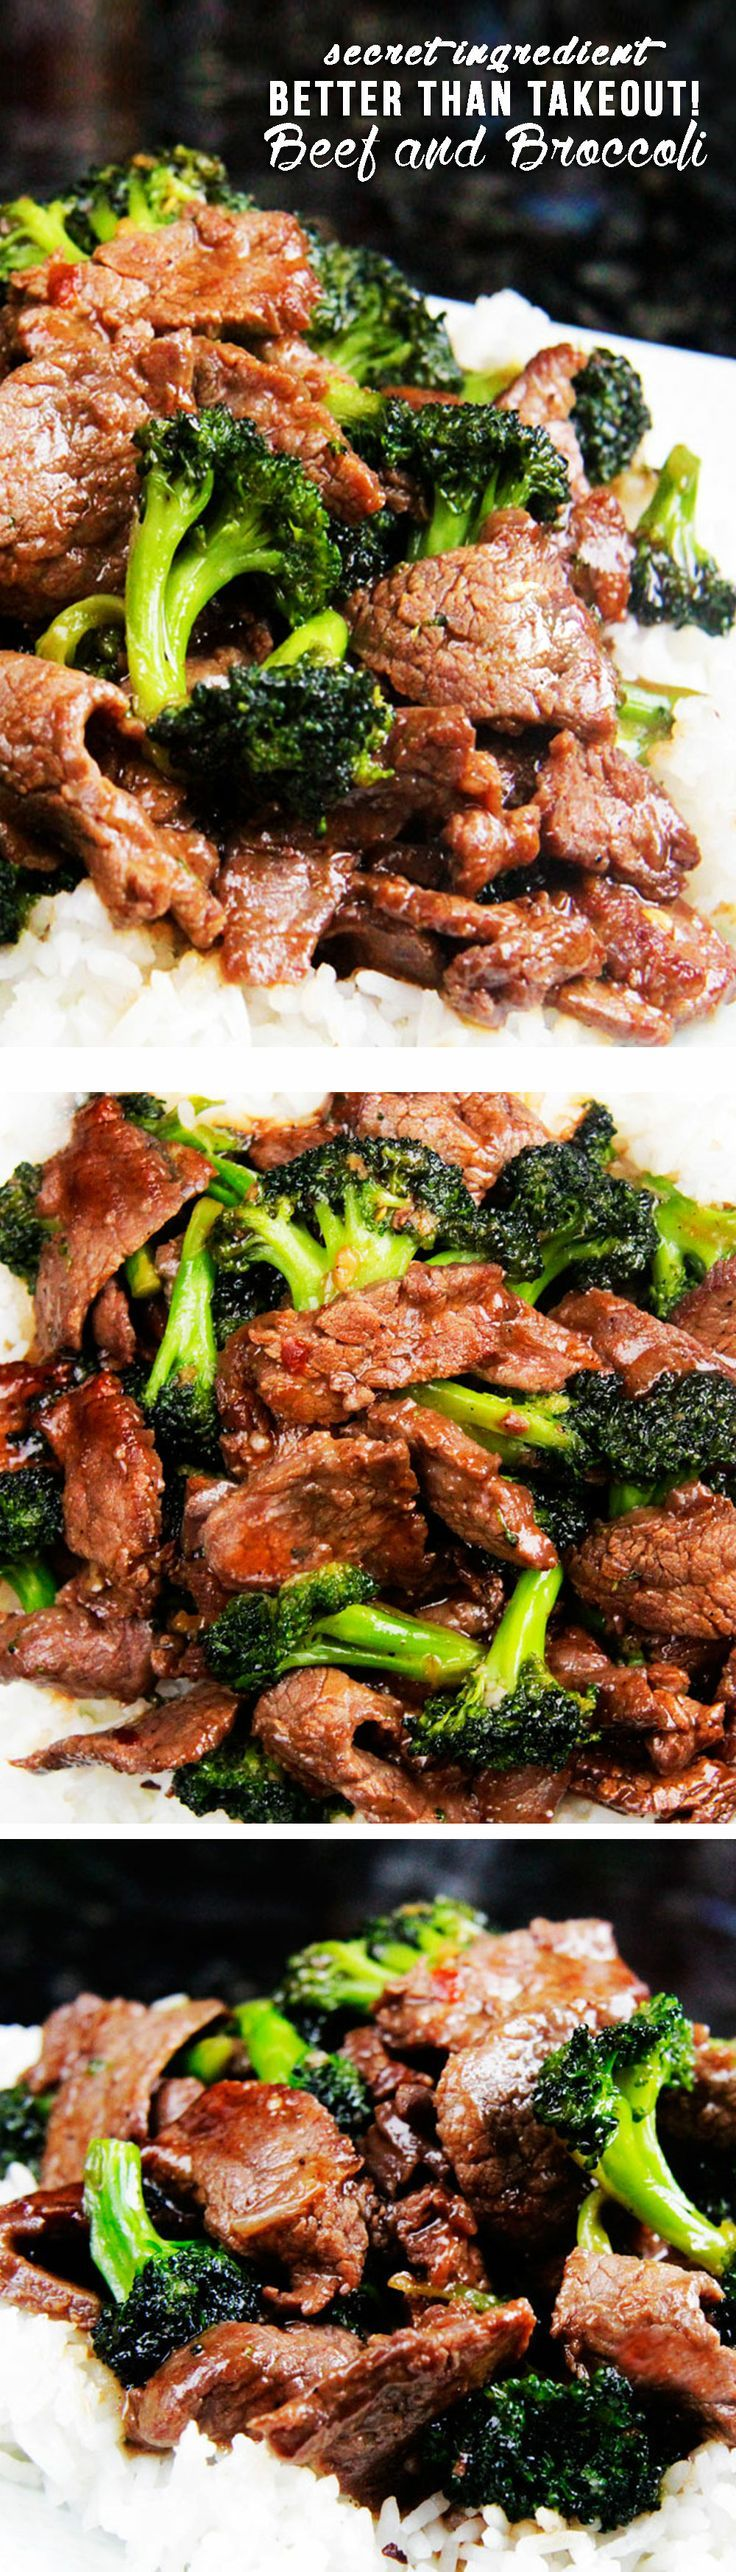 Tender slices of beef that are SO juicy, SO flavorful as they soak up every savory essence of the marinade and the rich, savory sauce.